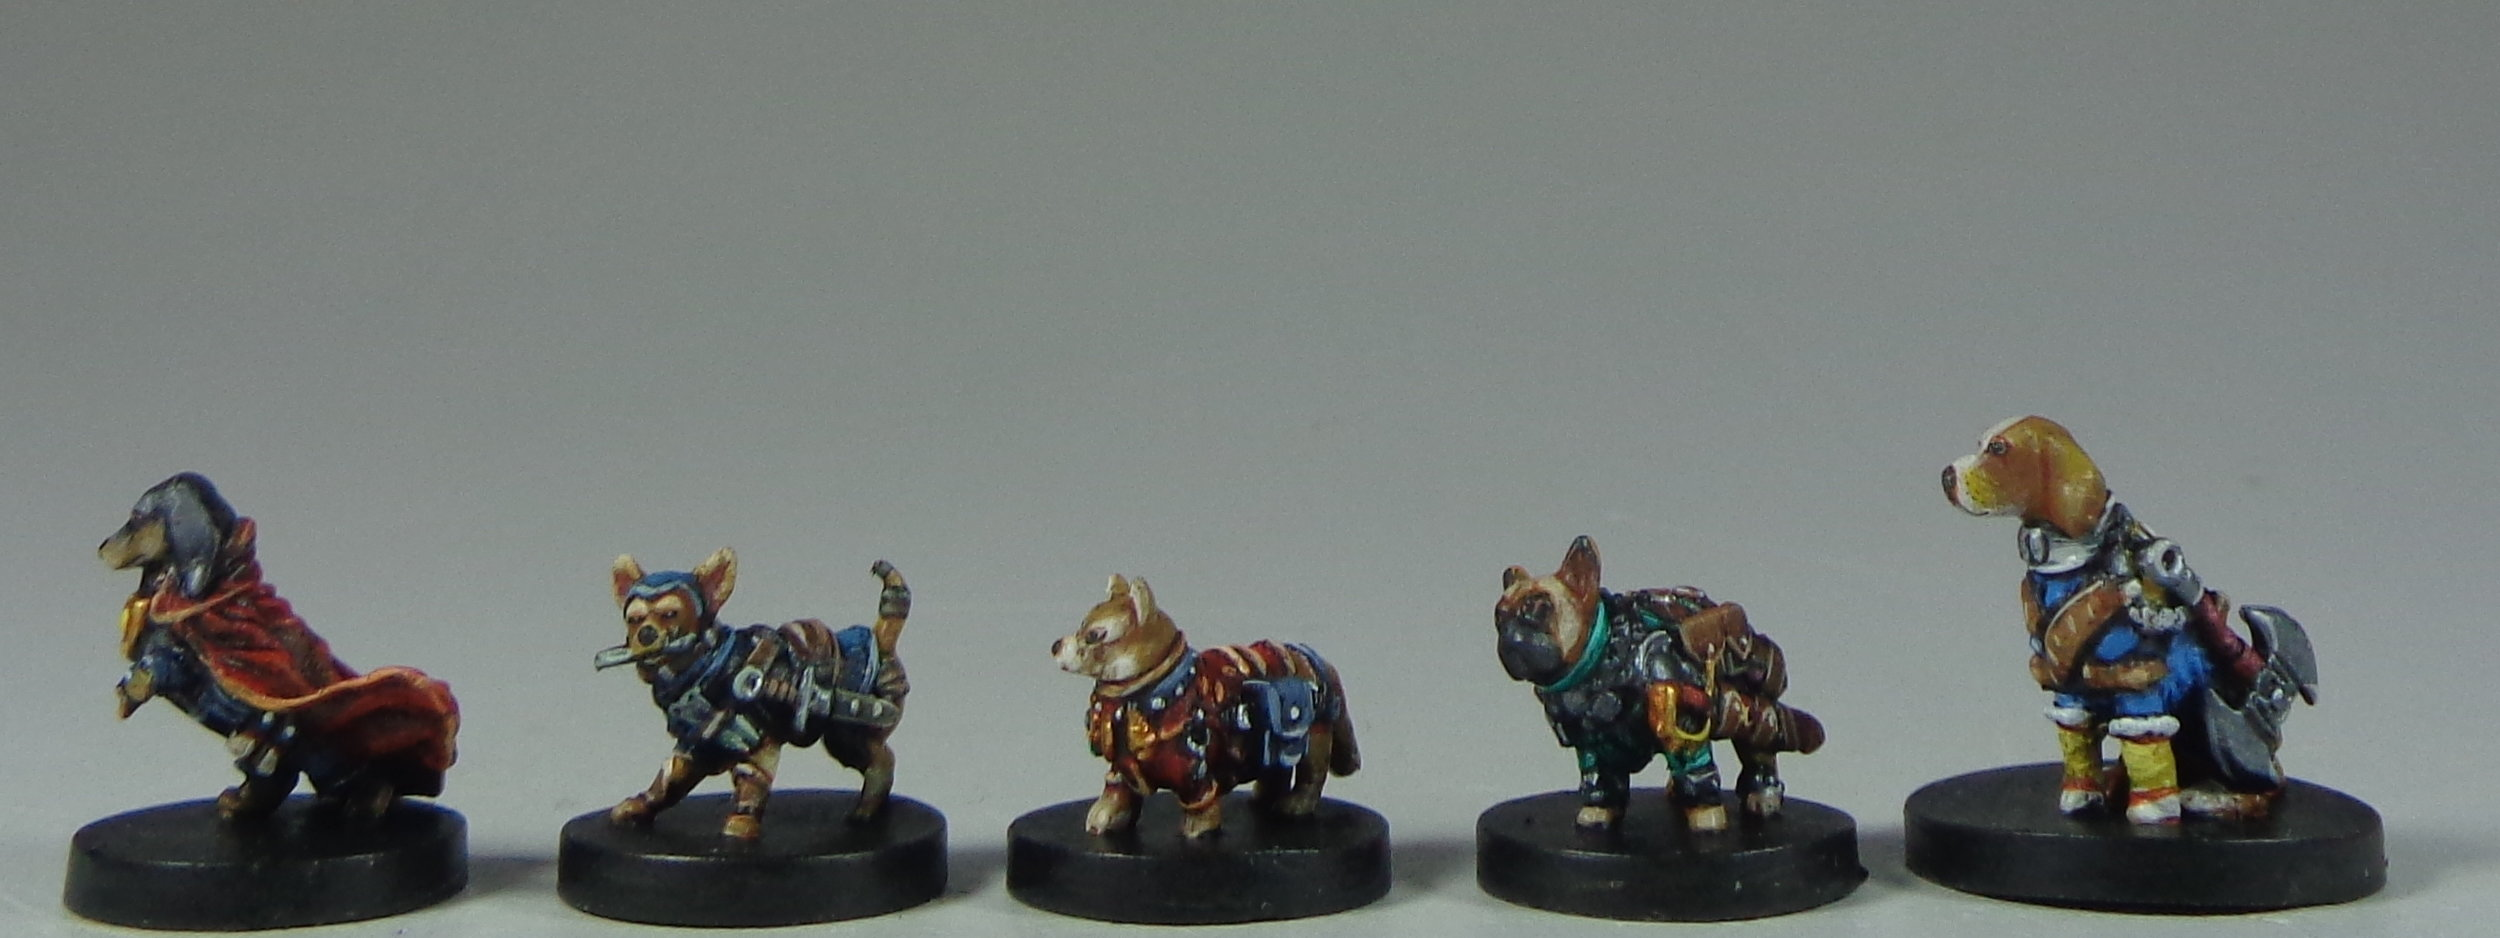 Dungeons and Doggos miniature painting (3).JPG